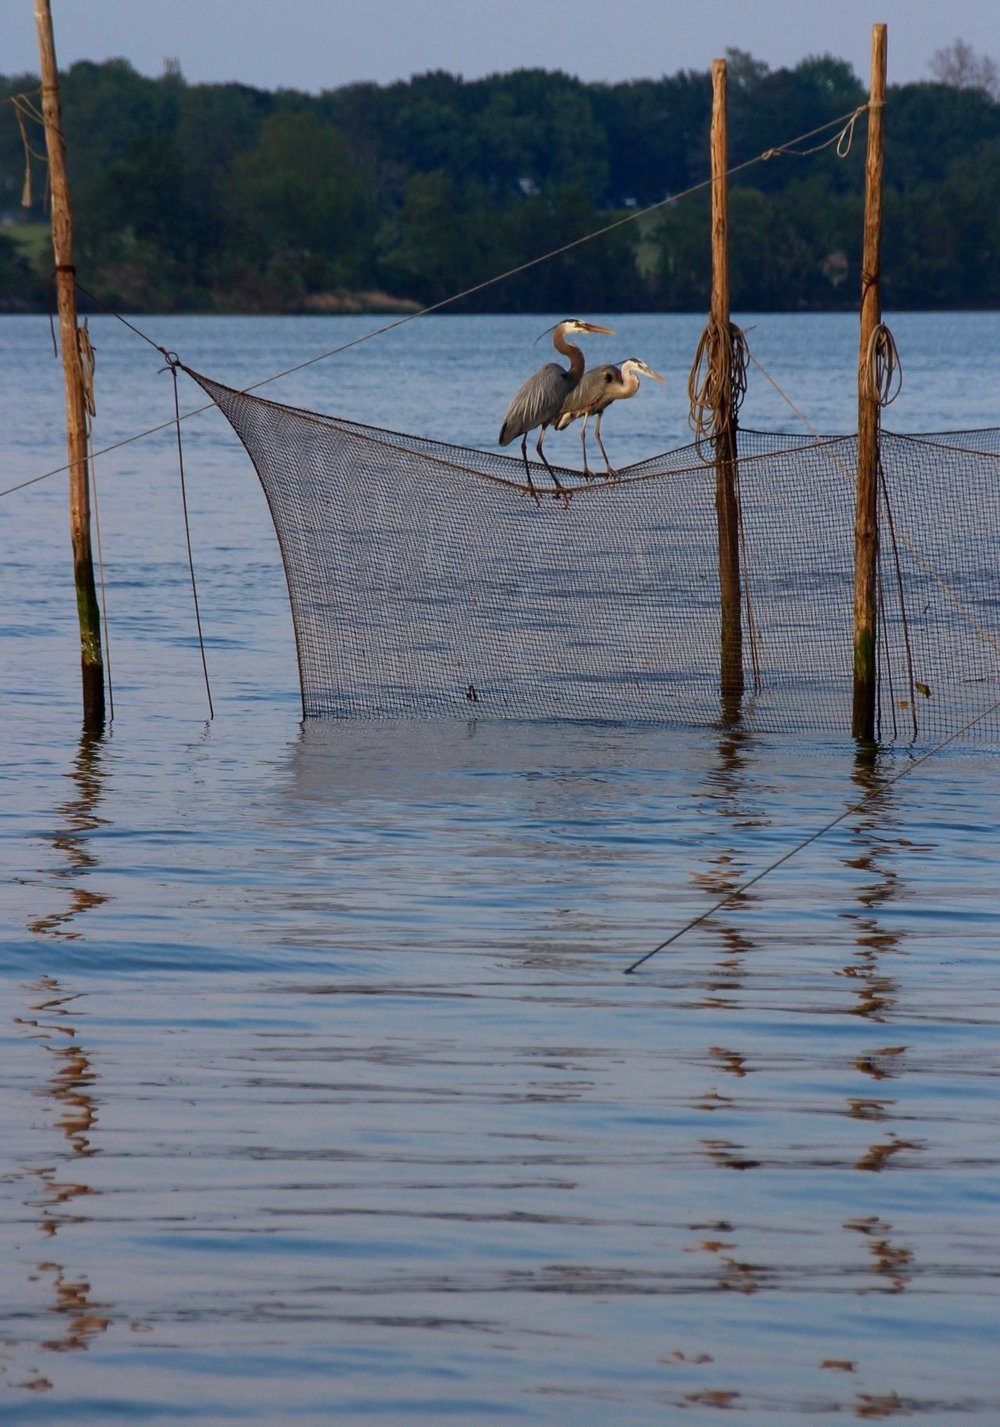 "A common sight on rivers during the midsummer around the Chesapeake Bay— pound nets. Used to trap fish, pound nets are one of the oldest gear types used by watermen in the Chesapeake. Made up of a stout poles strung with netting to create a series of funnels, pound nets can catch and hold thousands of fish once they're constructed. Native Americans along the Bay had their own version of pound nets known as ""weirs,"" which closely resembled the gear used by modern watermen. Herons, osprey, eagles and other fish-loving birds of prey are often thickly settled on the pound nets, poles and trees nearby— anything that will get them closer to the fish that seethe within.  Image by author."